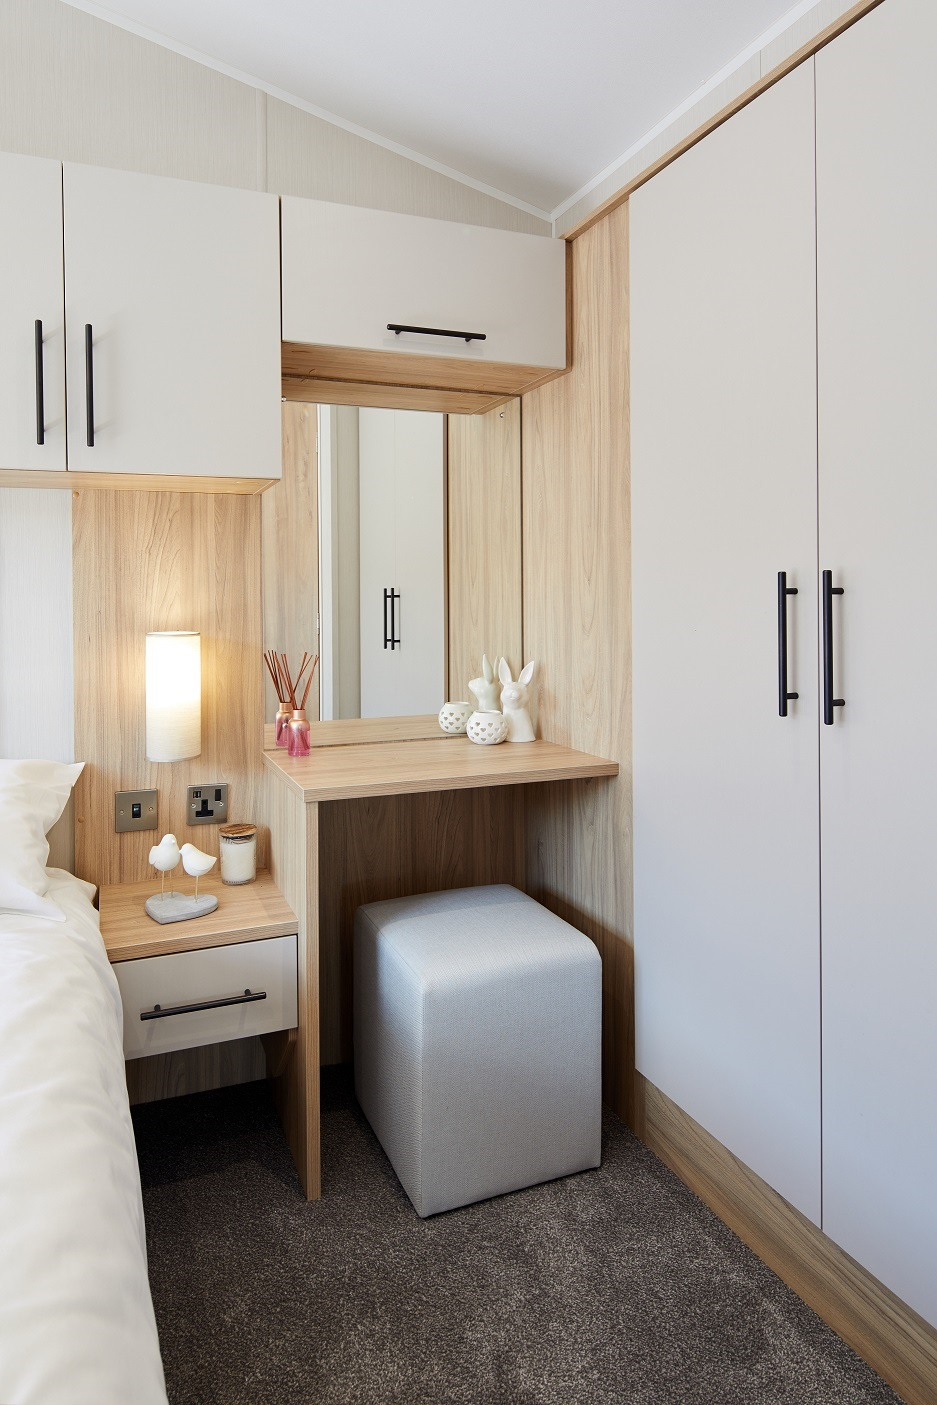 Willerby Manor: New Static Caravans and Holiday Homes for Sale, Available to Order Image 3